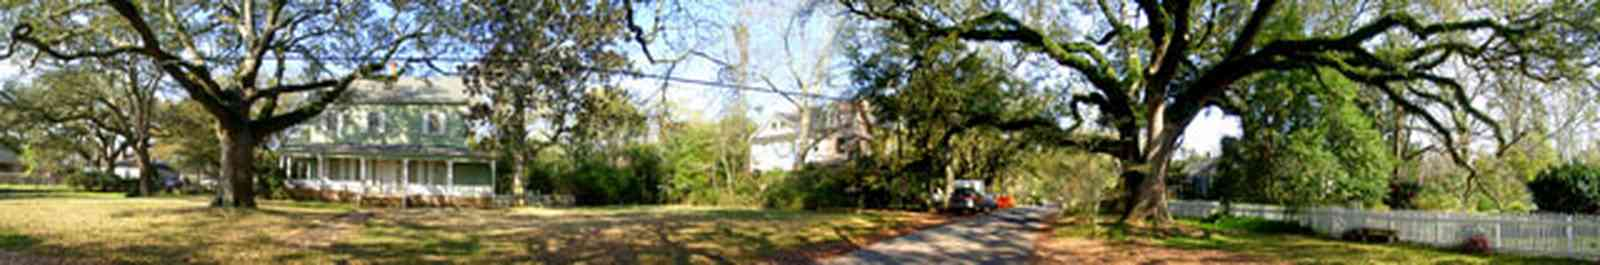 Pensacola:-East-Hill:-10th-Avenue-House_04.jpg:  oak trees, colonial home, shutters, porch, ,